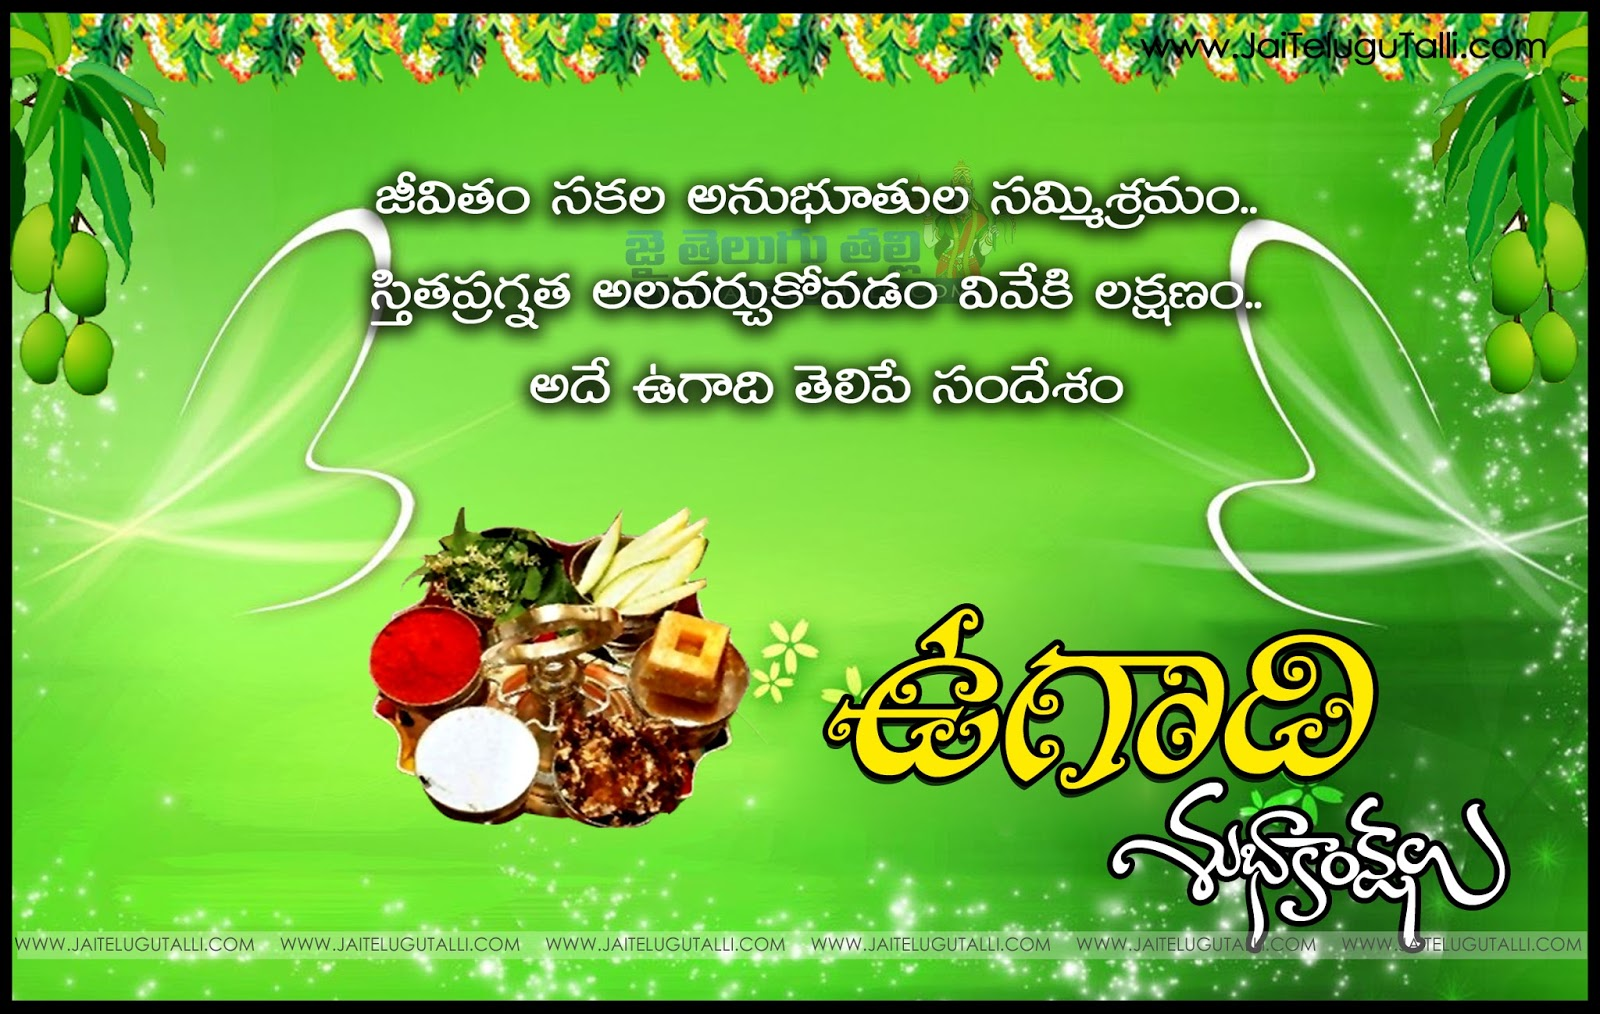 telugu happy ugadi festival greetings with quotes for